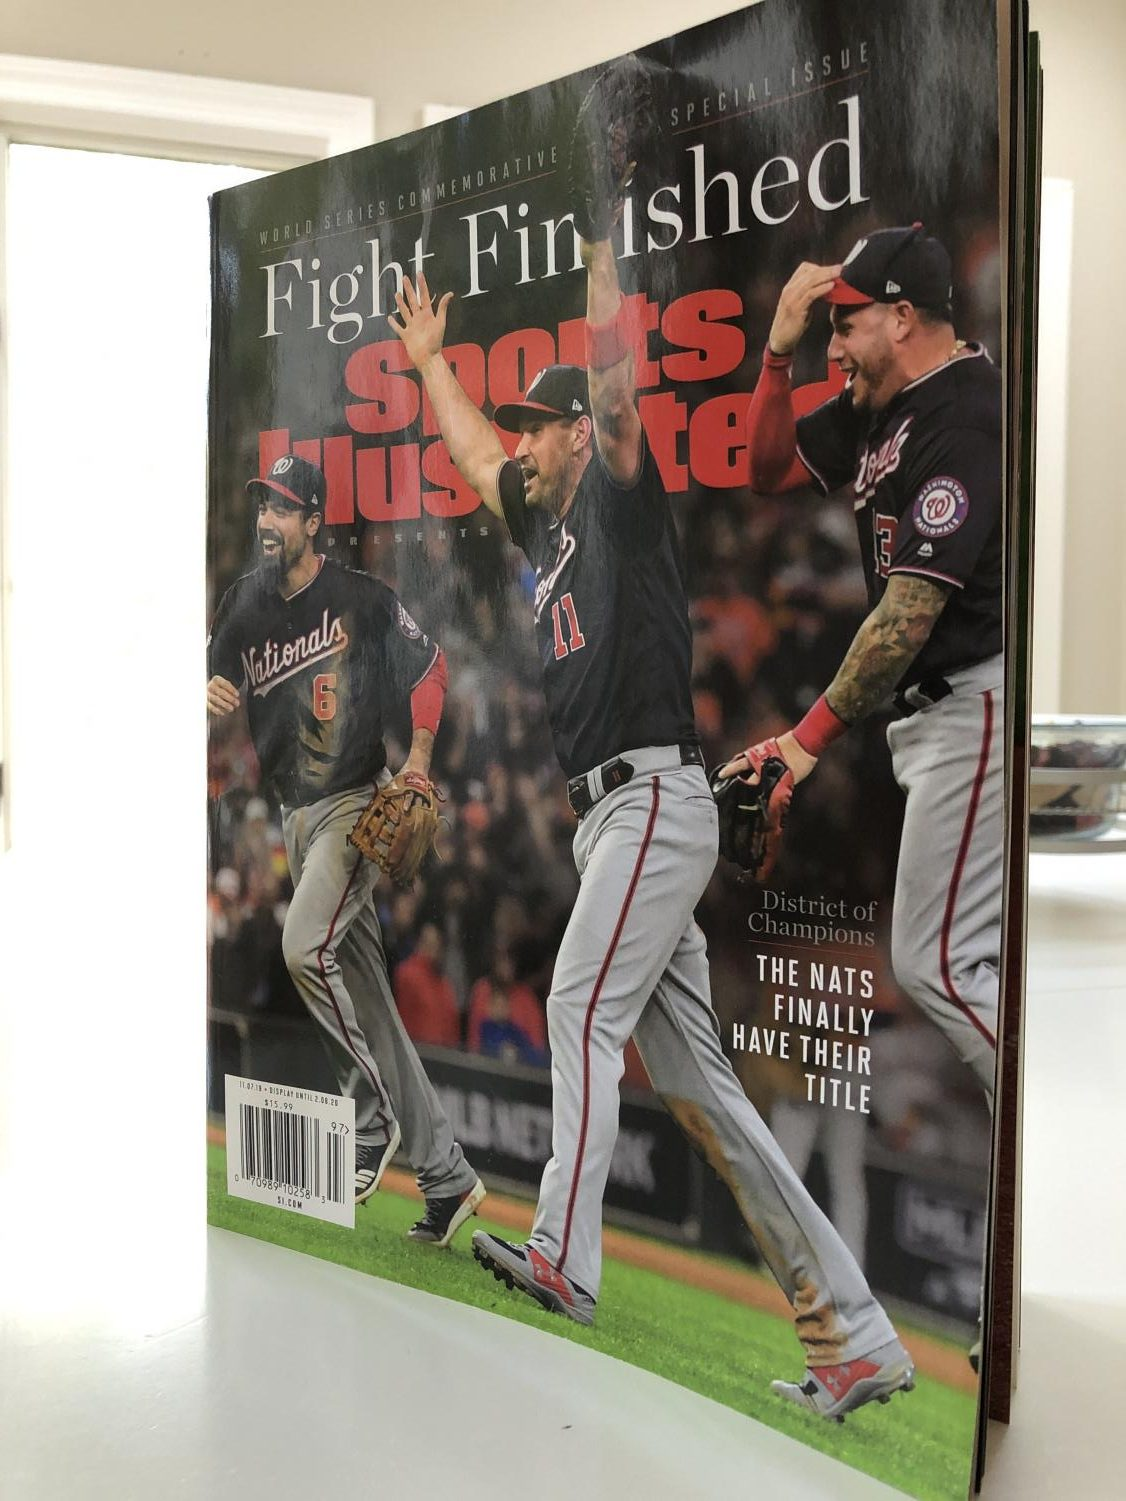 The Nationals players celebrating their victory on the cover of Sports Illustarted